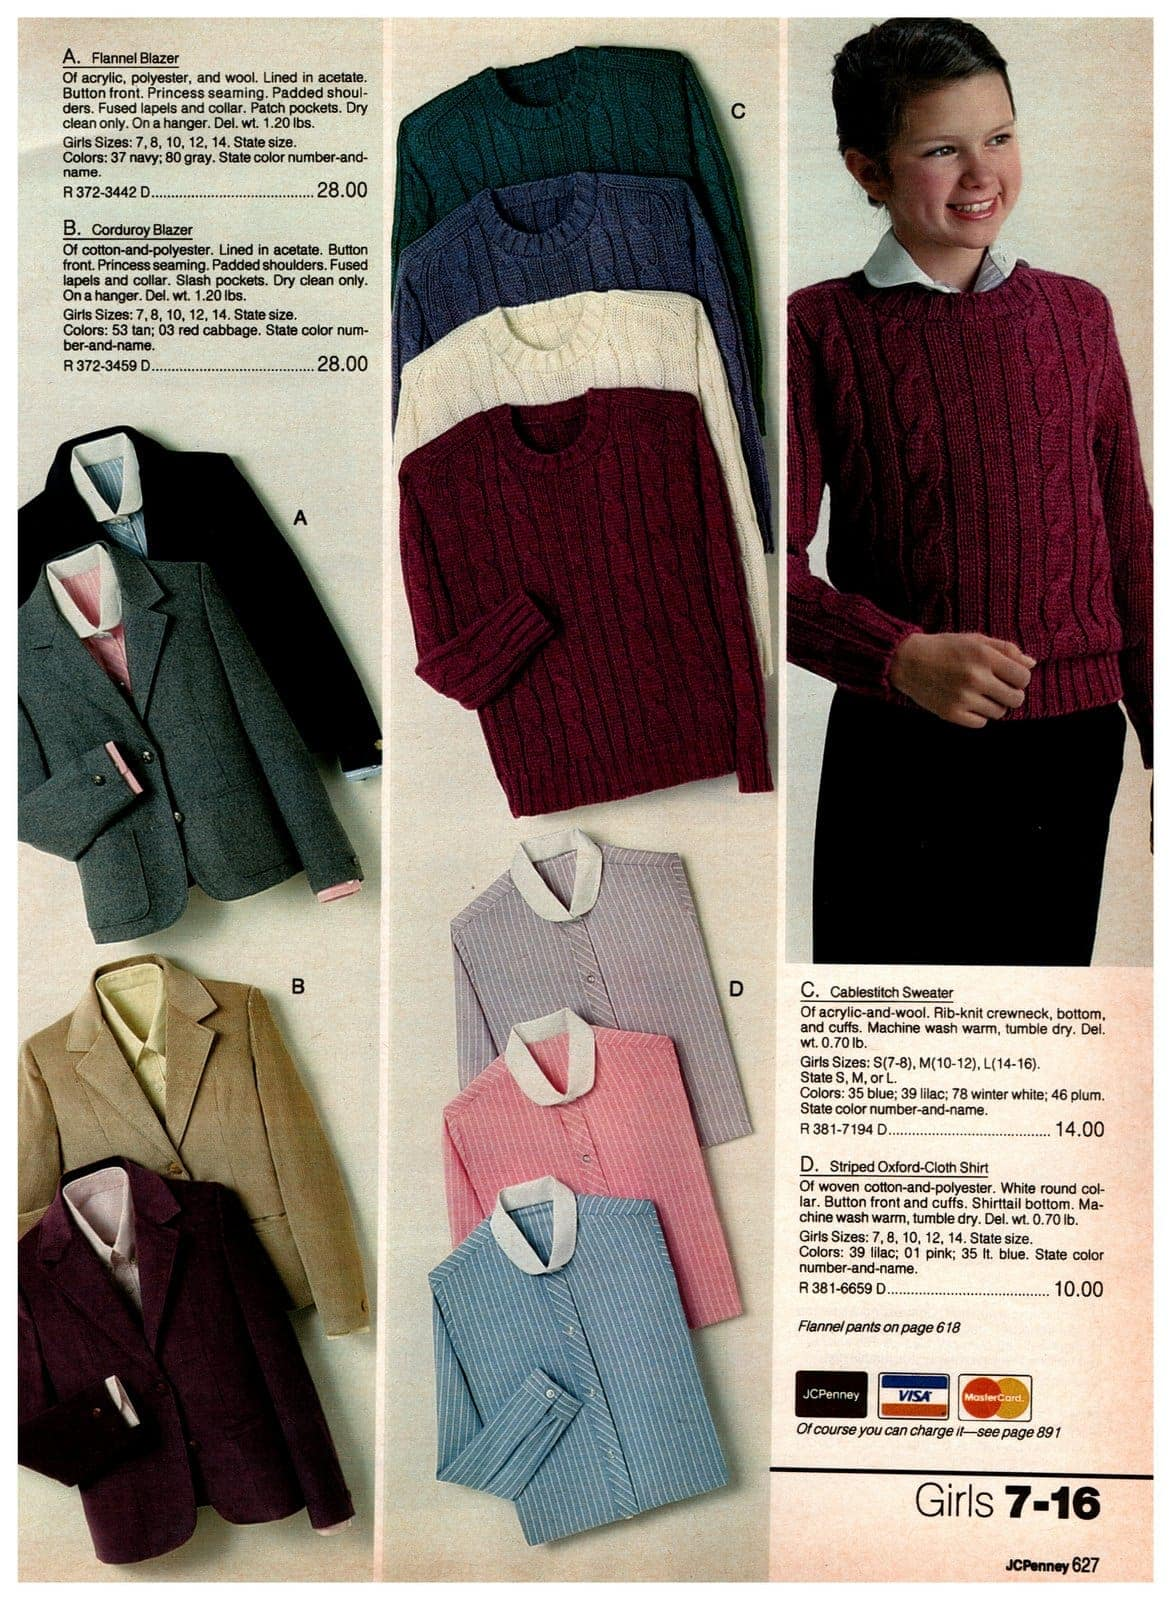 Vintage flannel and corduroy blazers, plus cableswitch sweaters and striped Oxford-cloth shirts